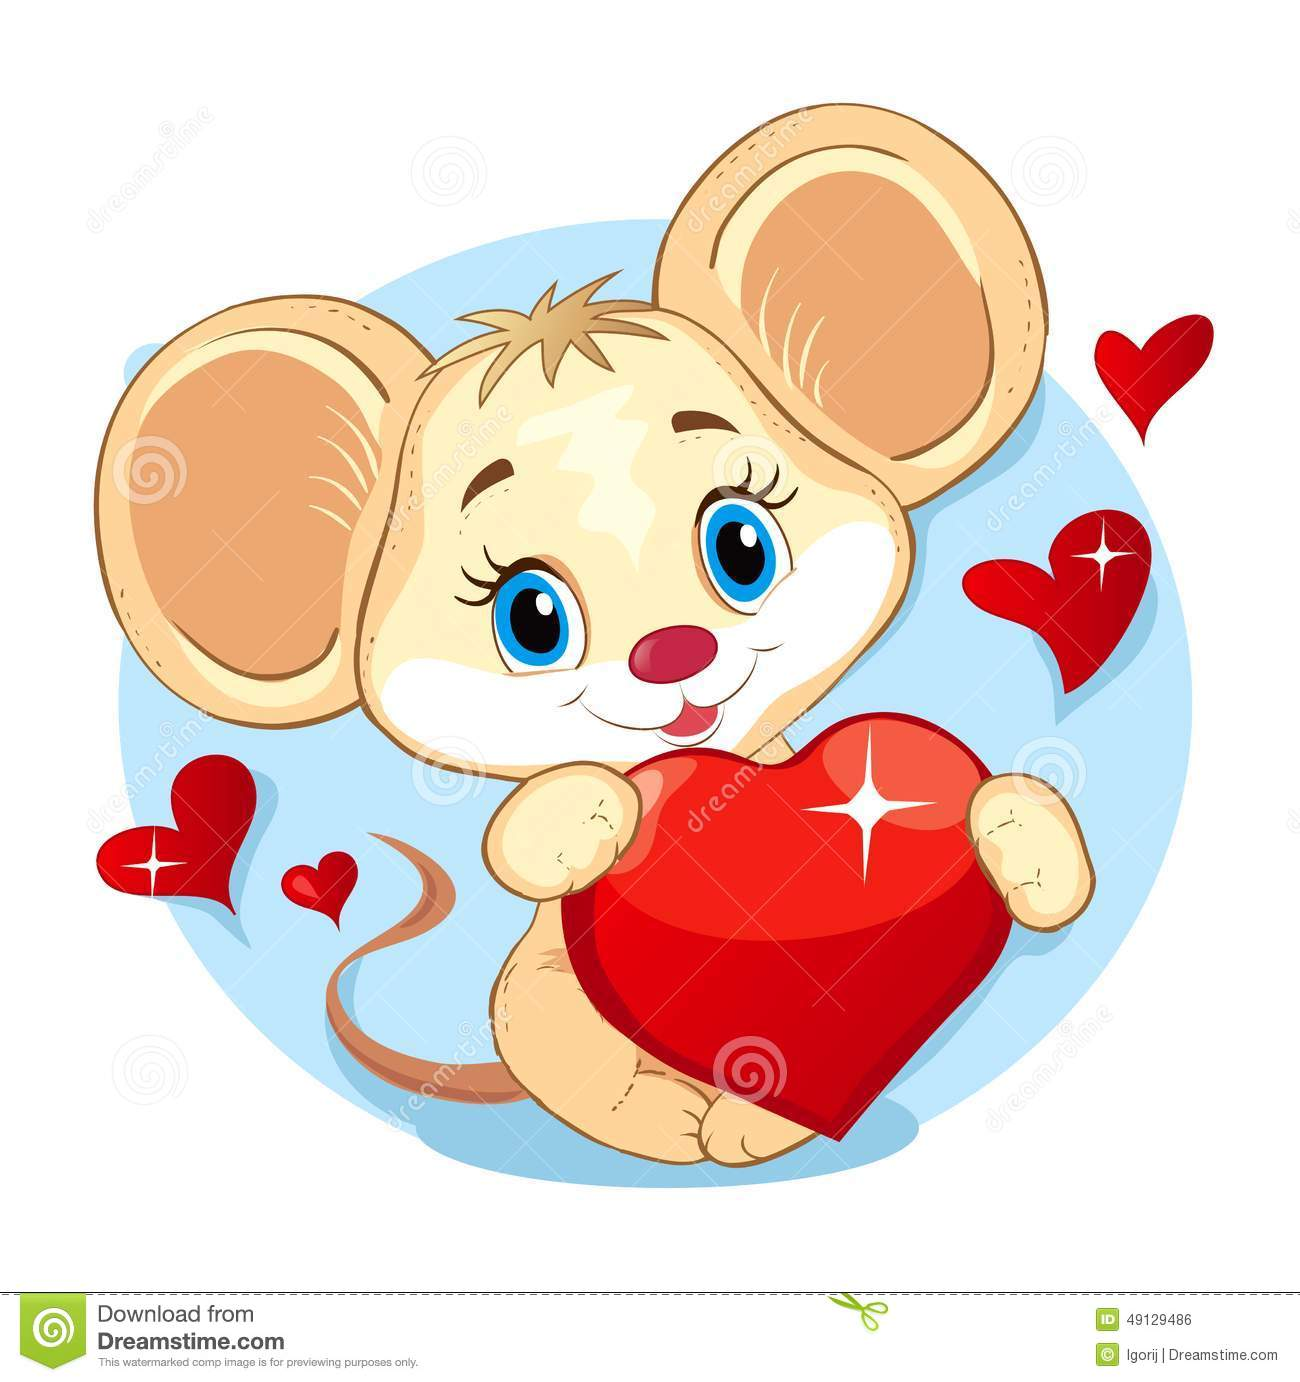 Cute Mouse Stock Vector - Image: 49129486